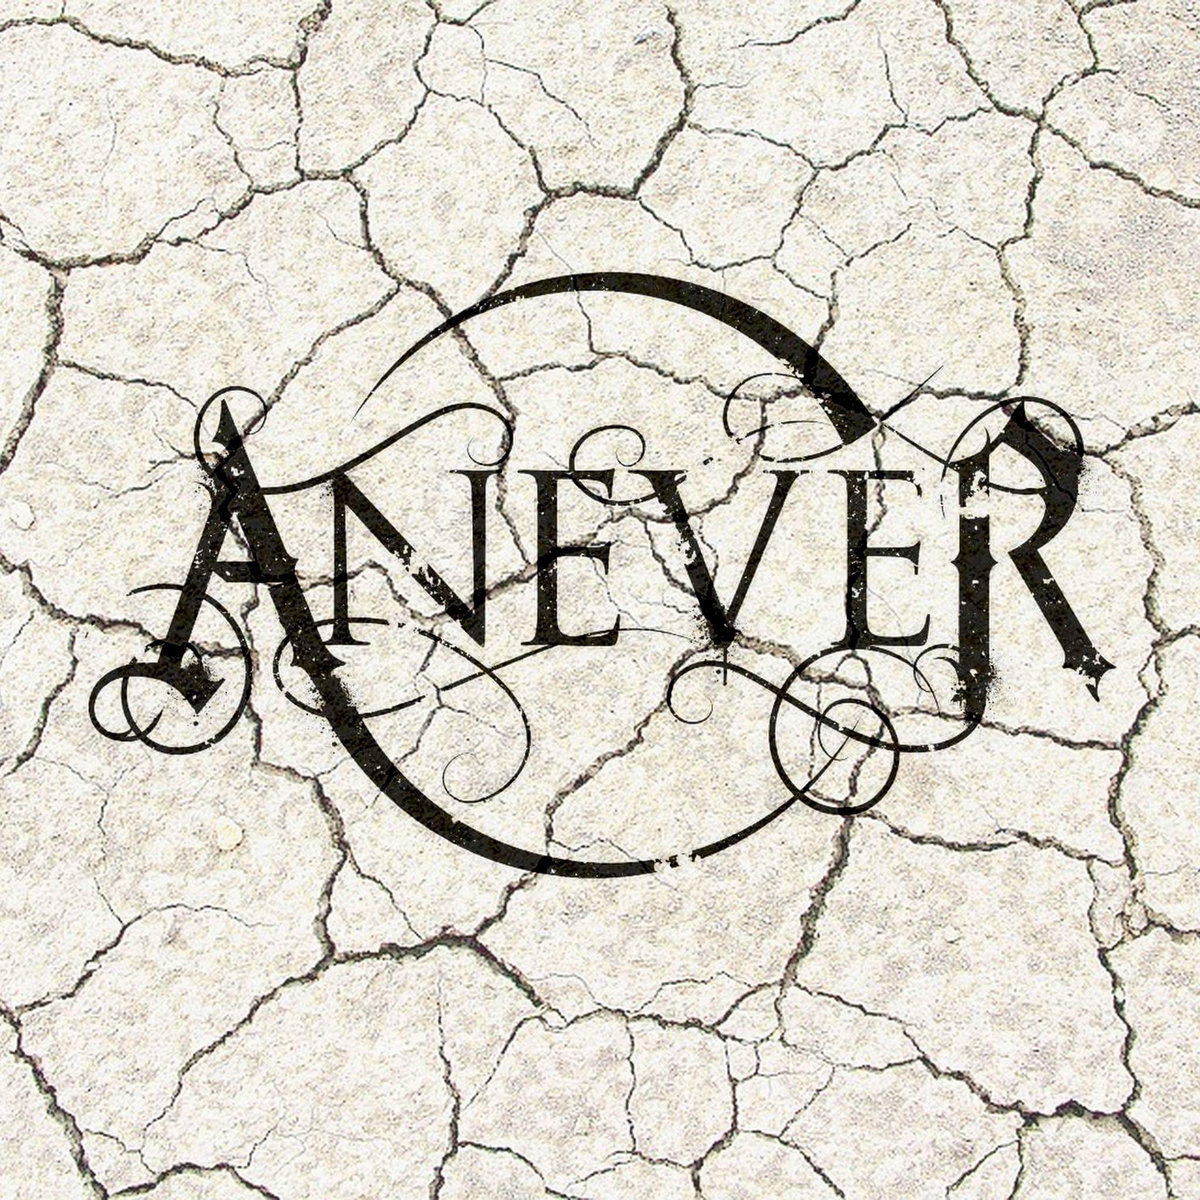 www.facebook.com/aneverband